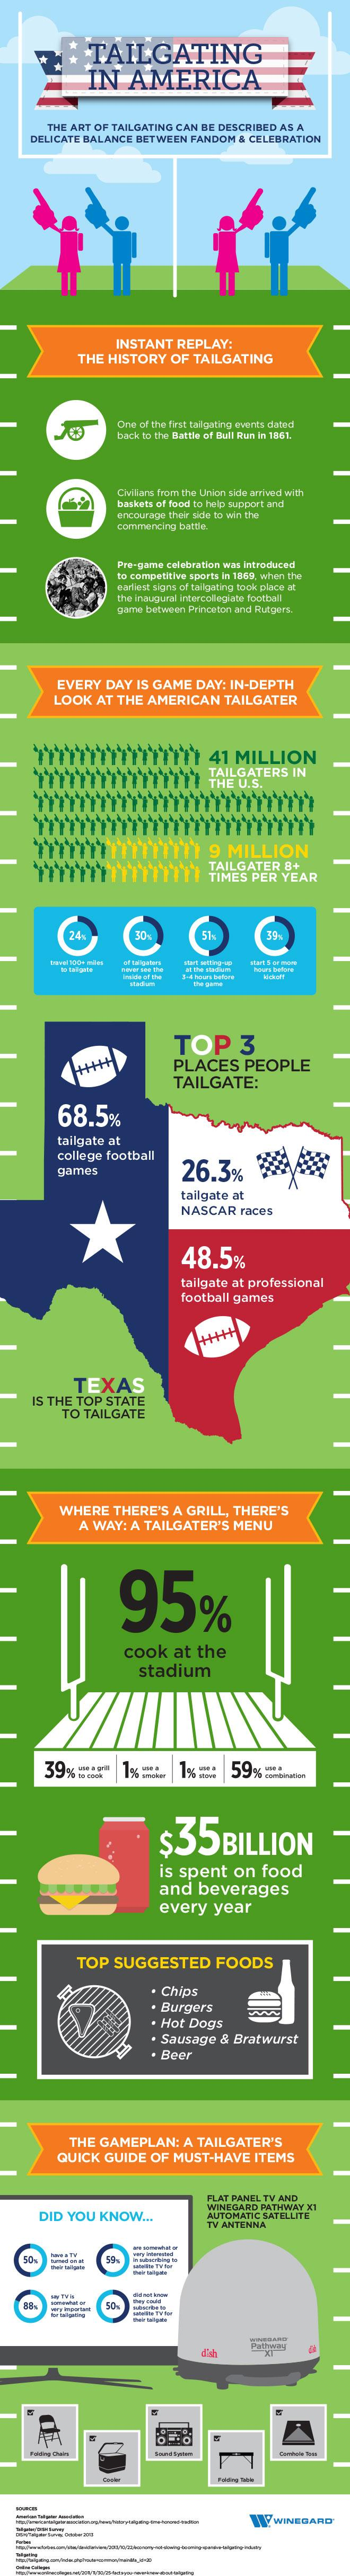 The American Tailgater infographic